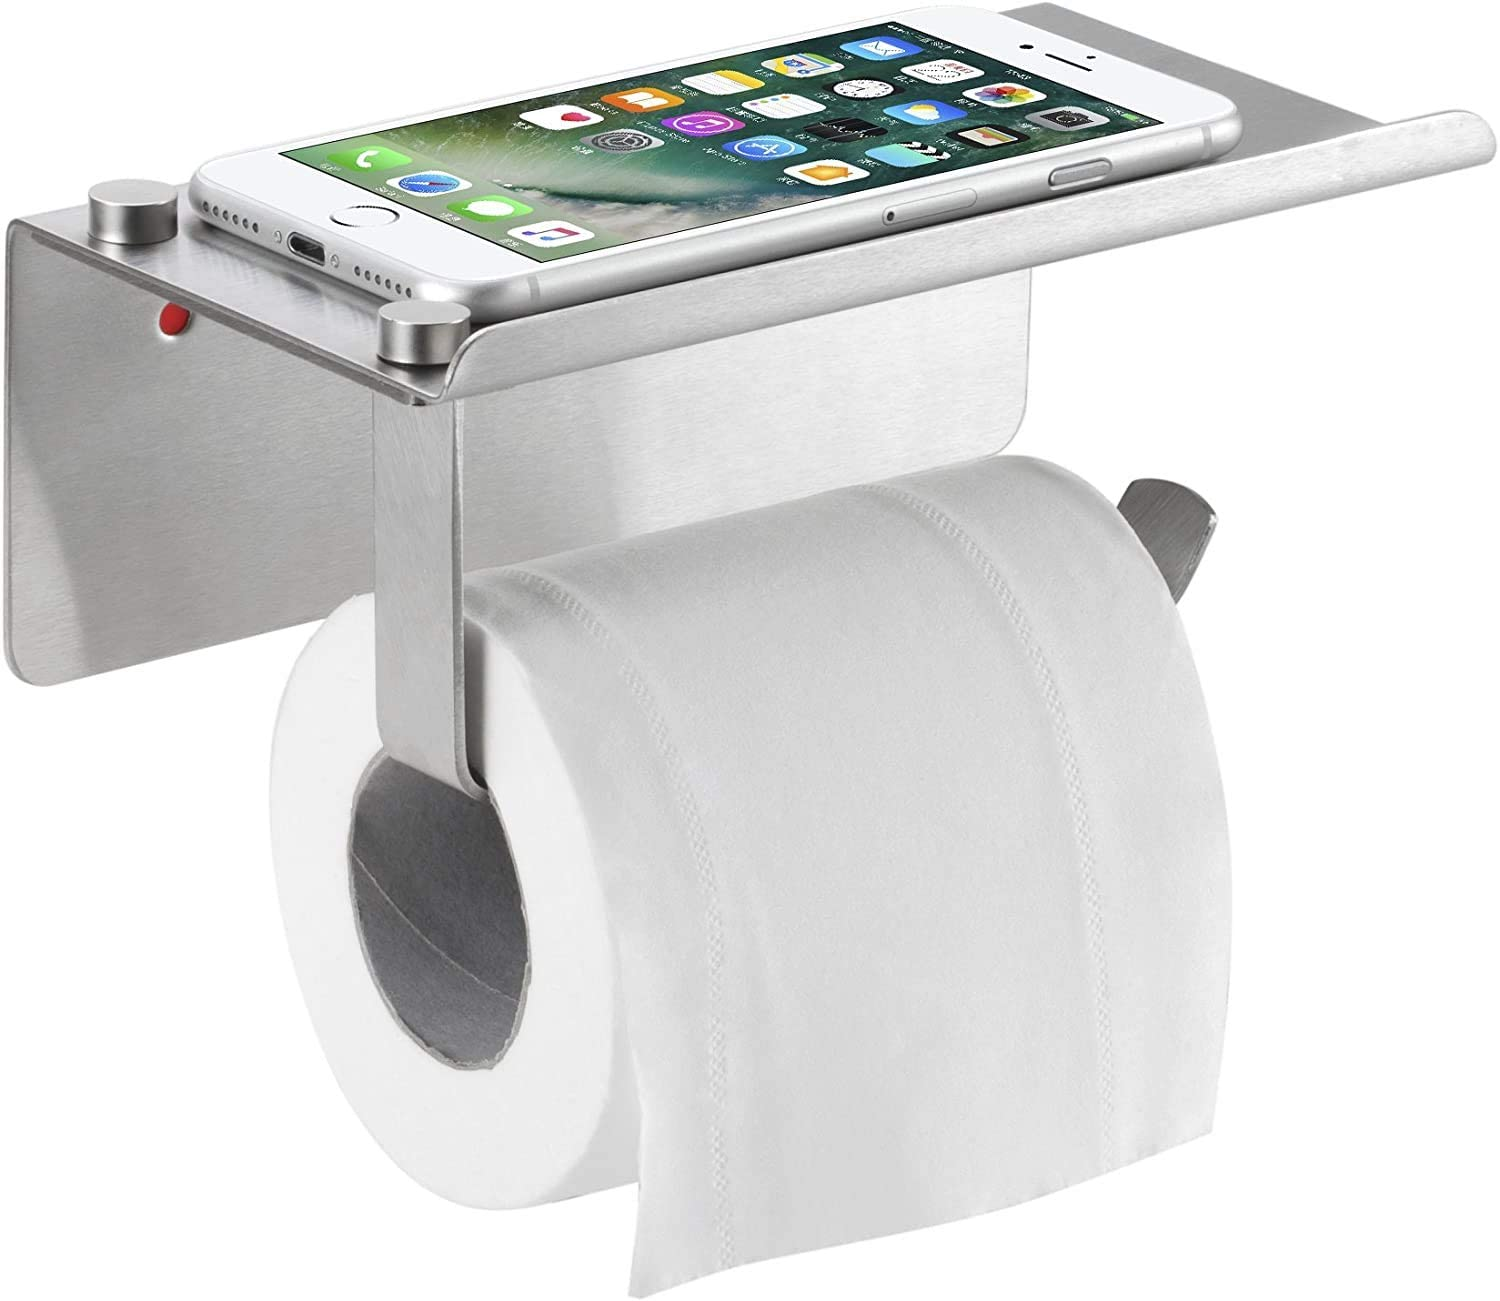 Bosszi Toilet Paper Holder With Phone Shelf Wall Mounted Sus304 Stainless Steel Bathroom Accessories Tissues Roll Dispenser Storage Rack Brushed Amazon Com